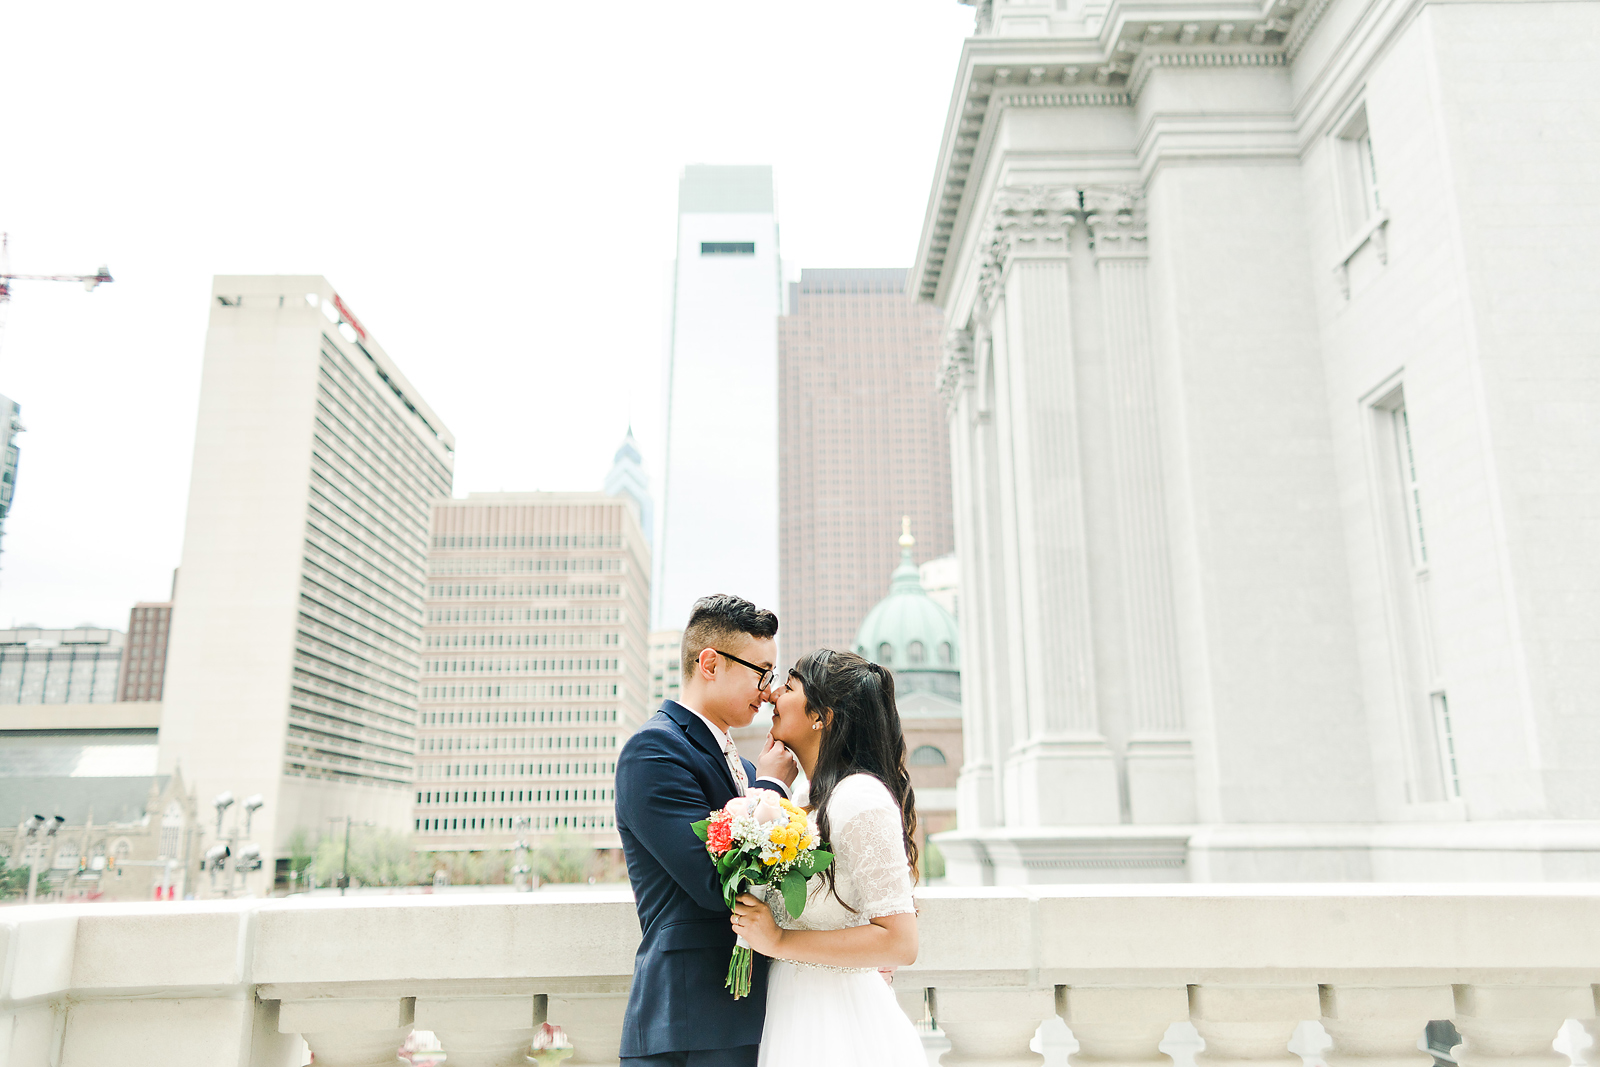 lds_philadelphia_temple_wedding_photography_012.jpg